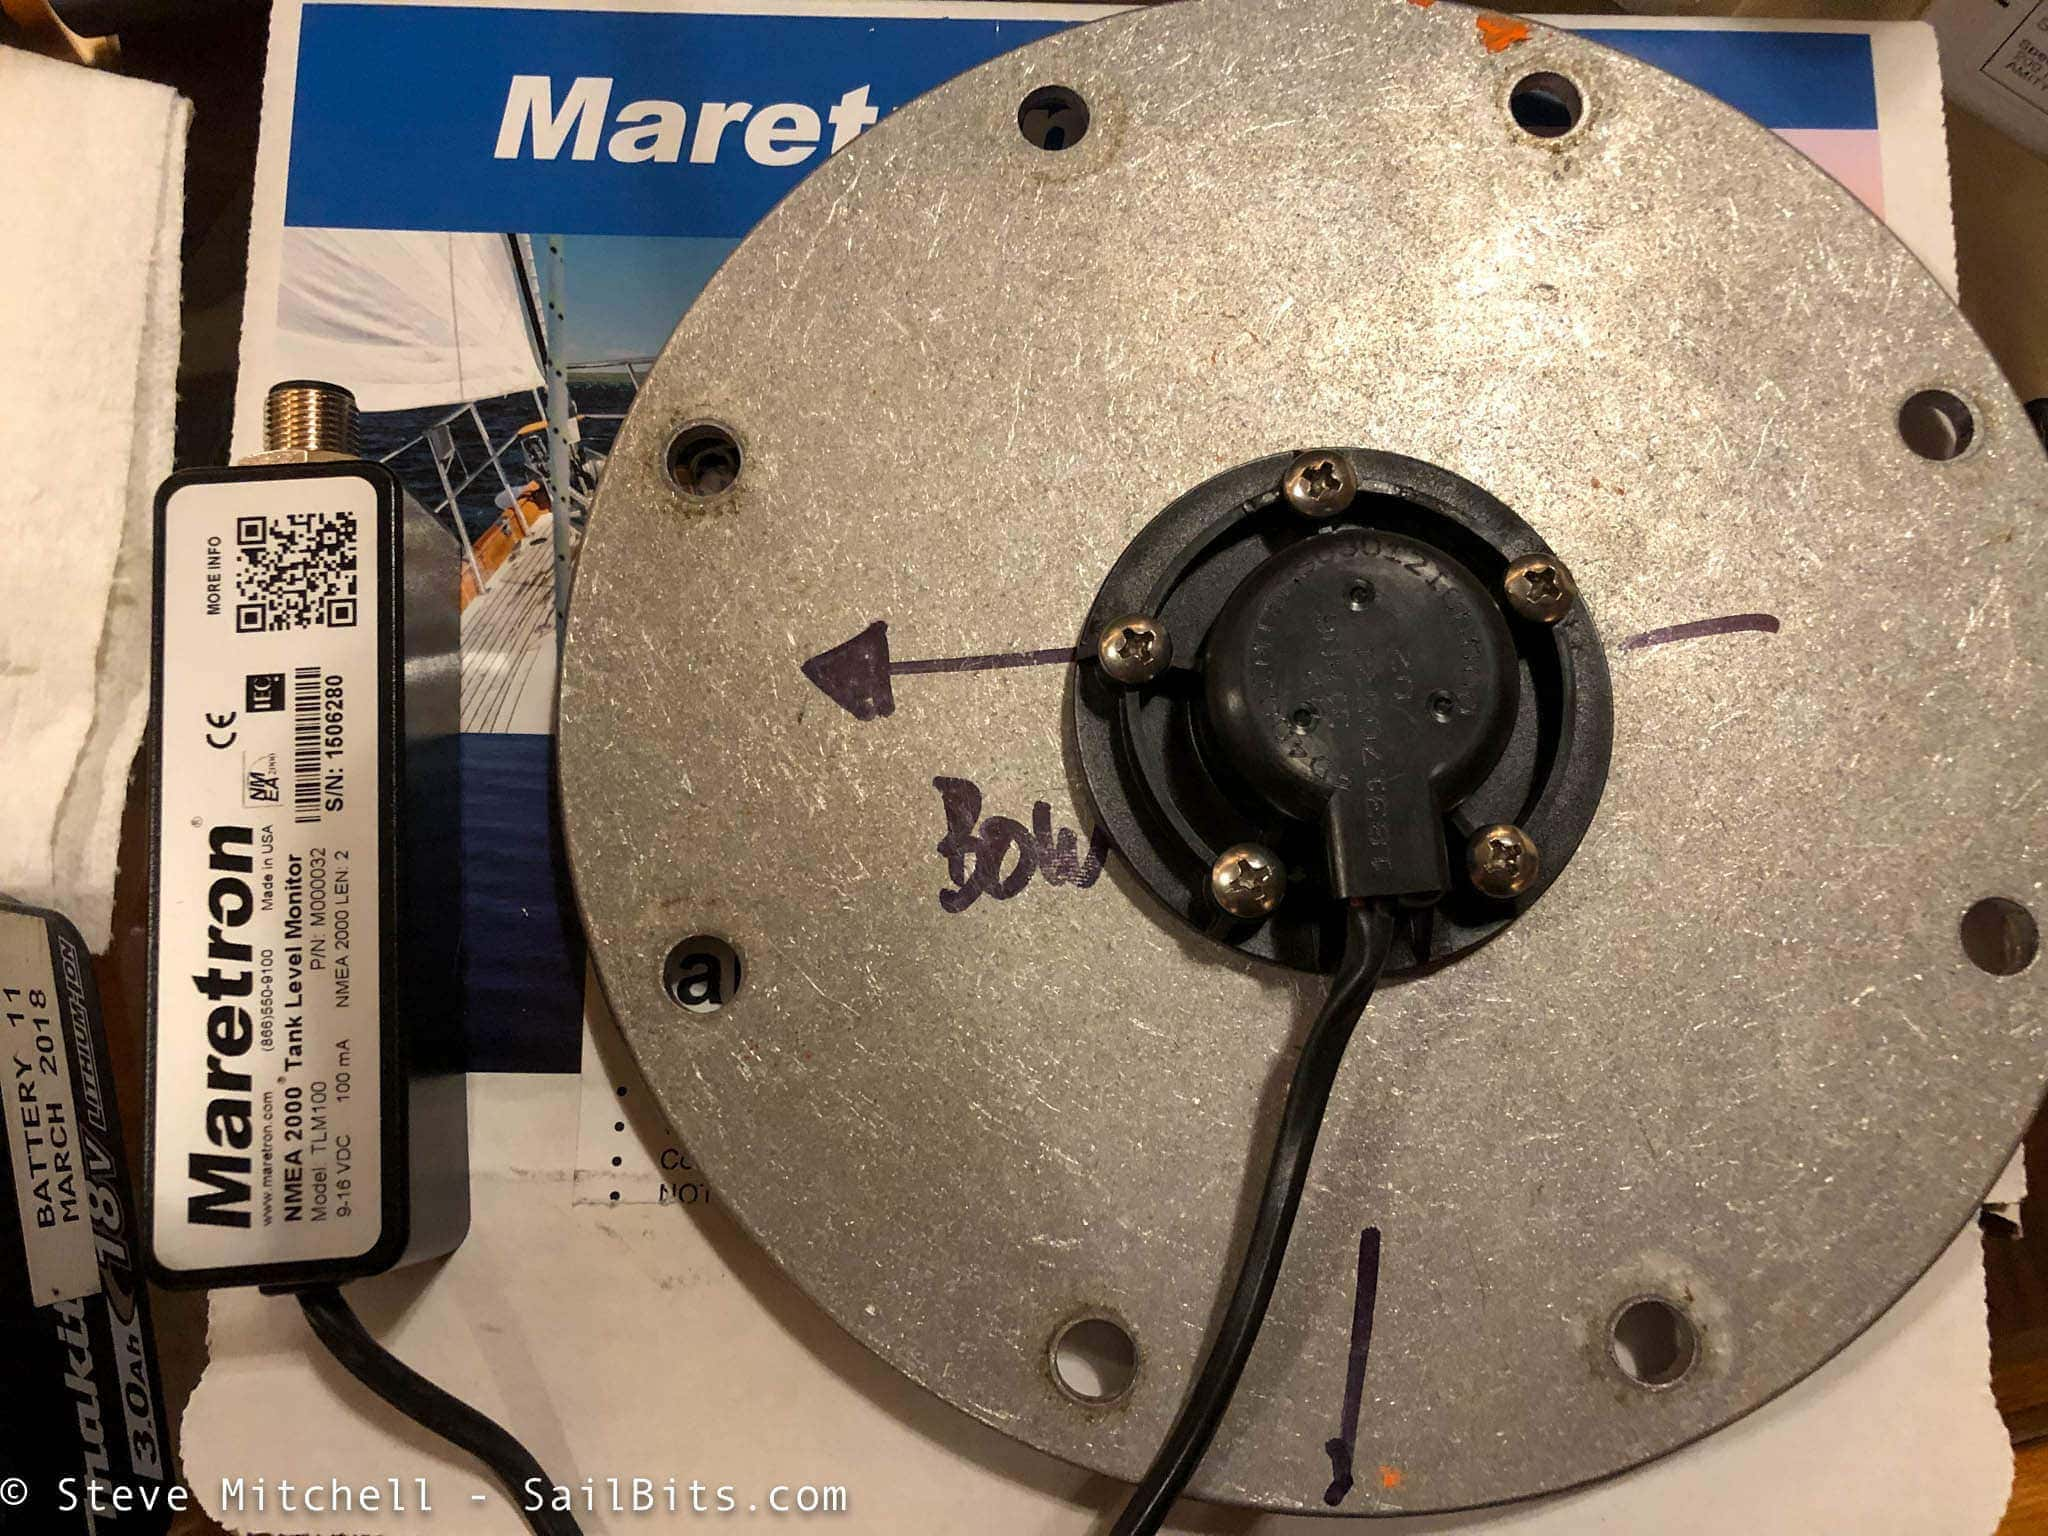 Diesel tank monitoring with Maretron TLM